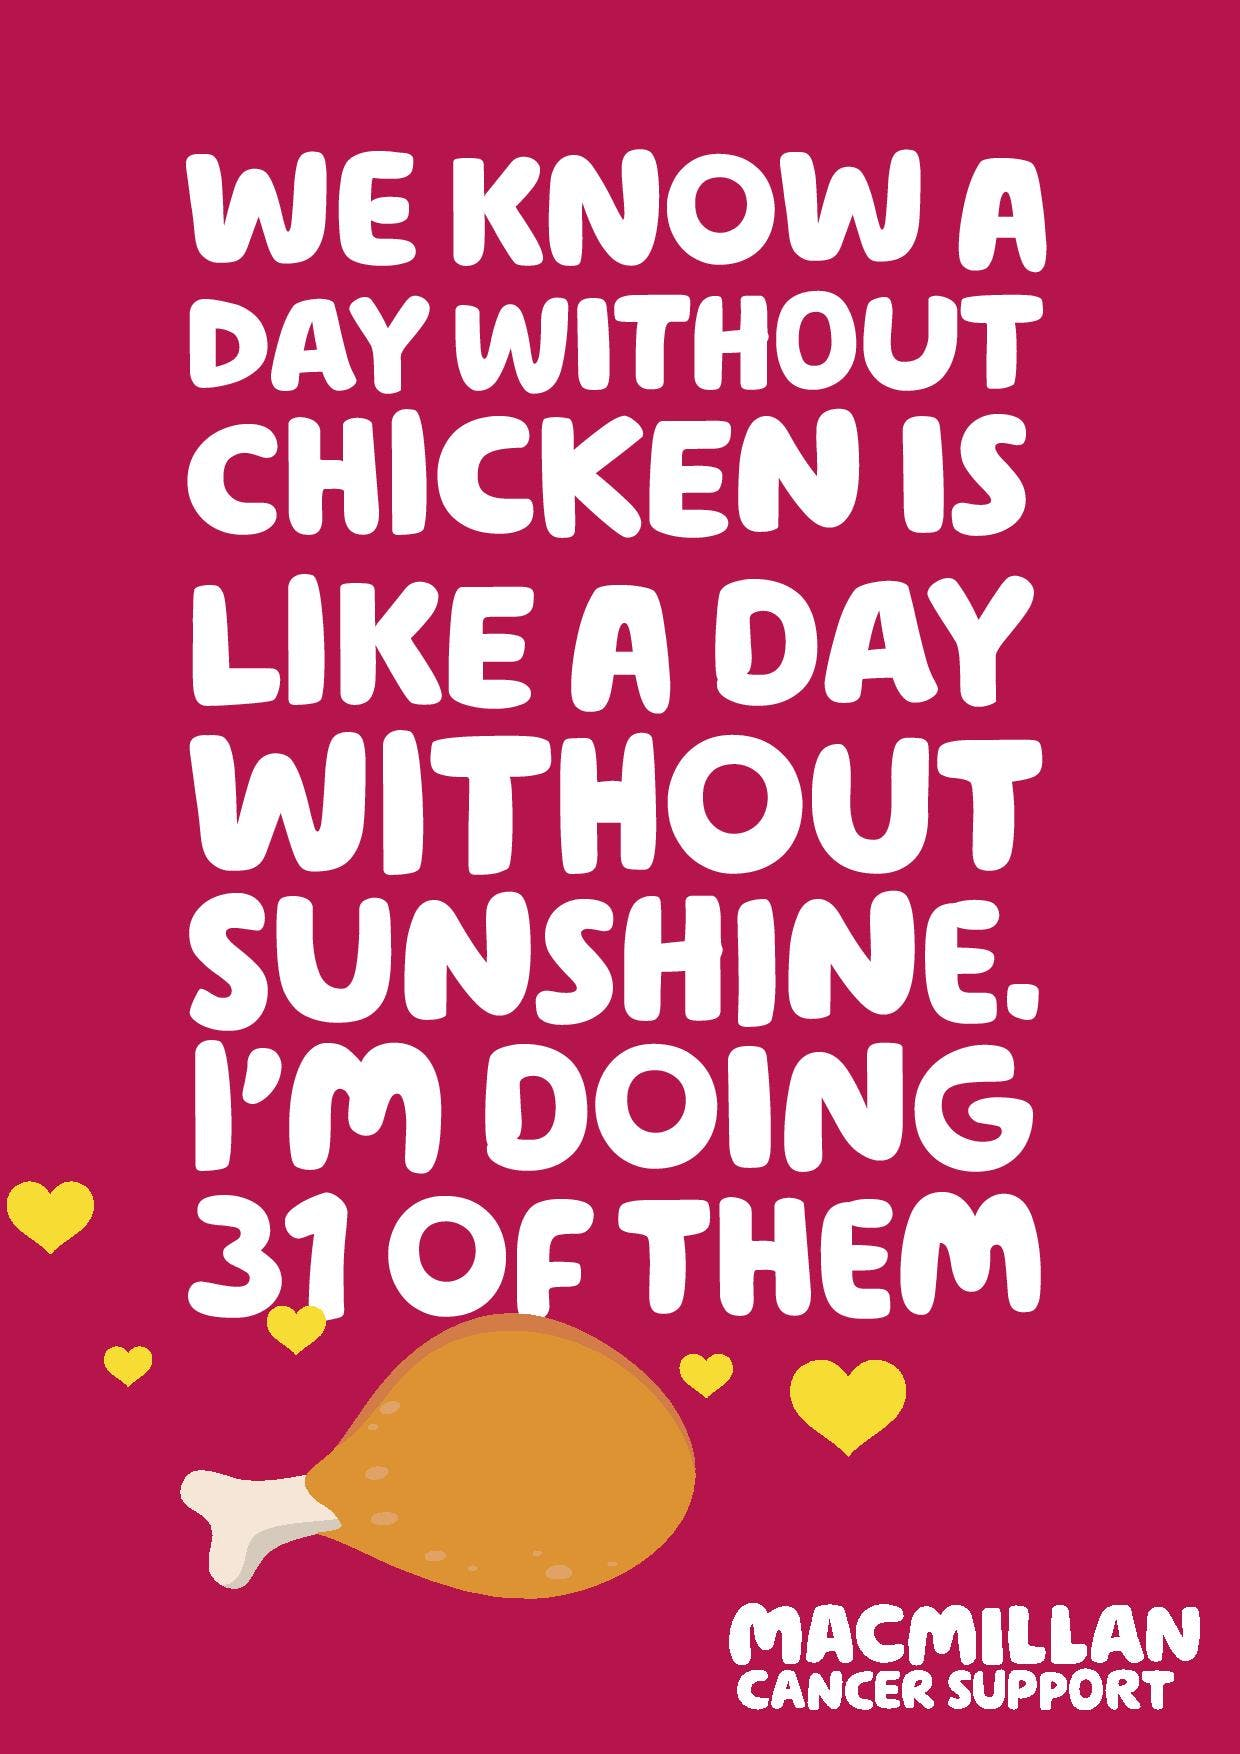 pink background Text: a day without chicken is like a day without sunshine I'm doing 31 of them